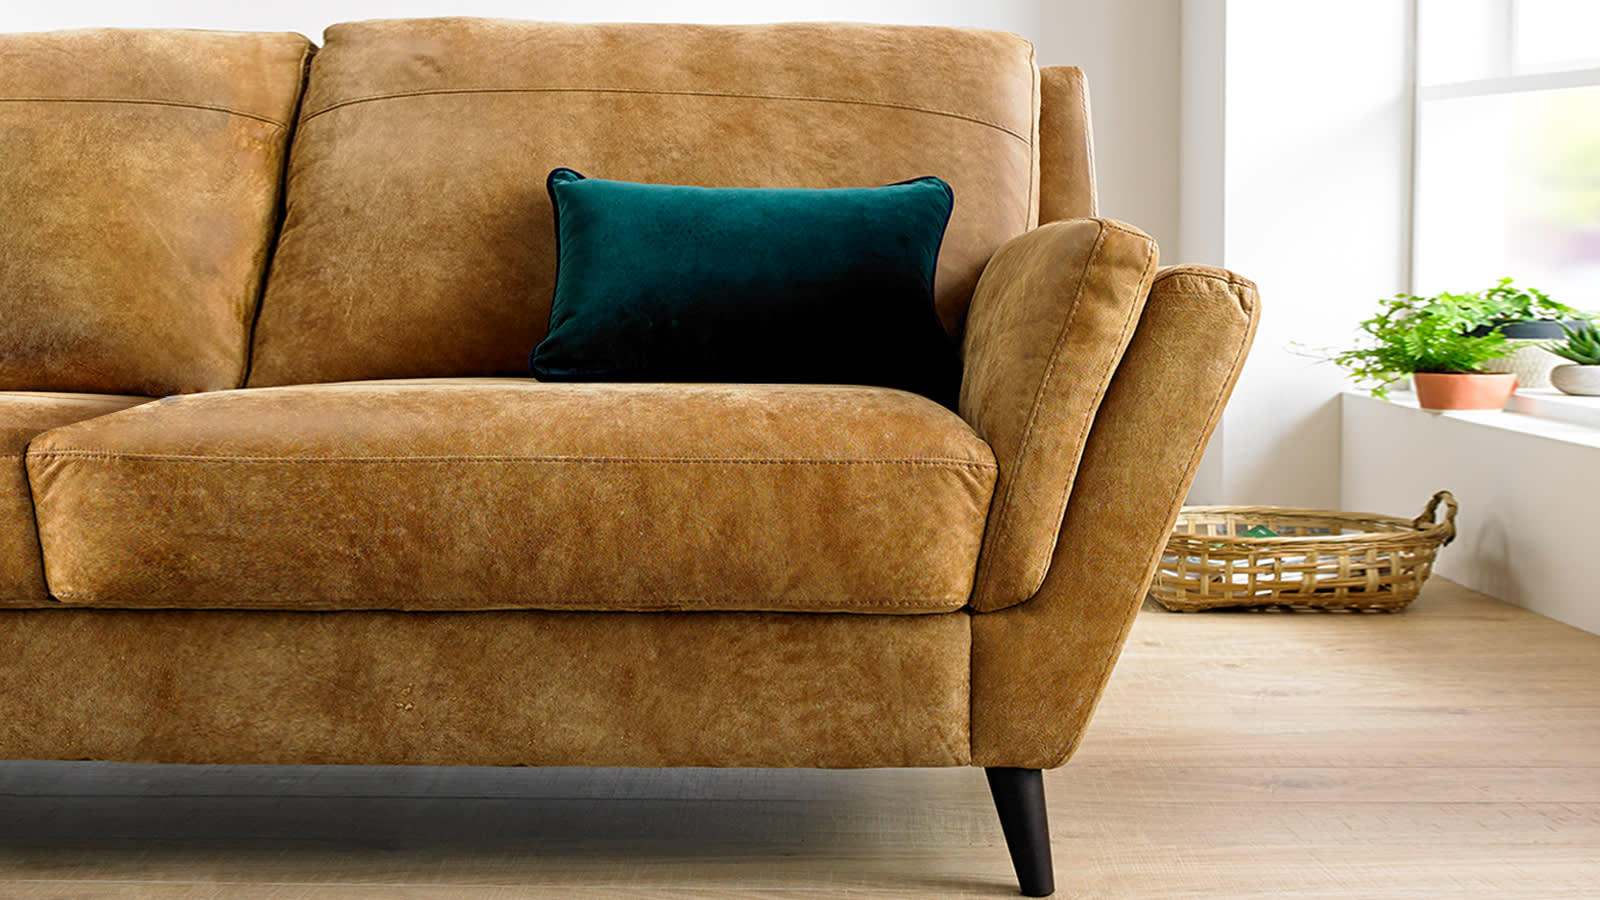 Brown Nubuck leather sofa with green cushion